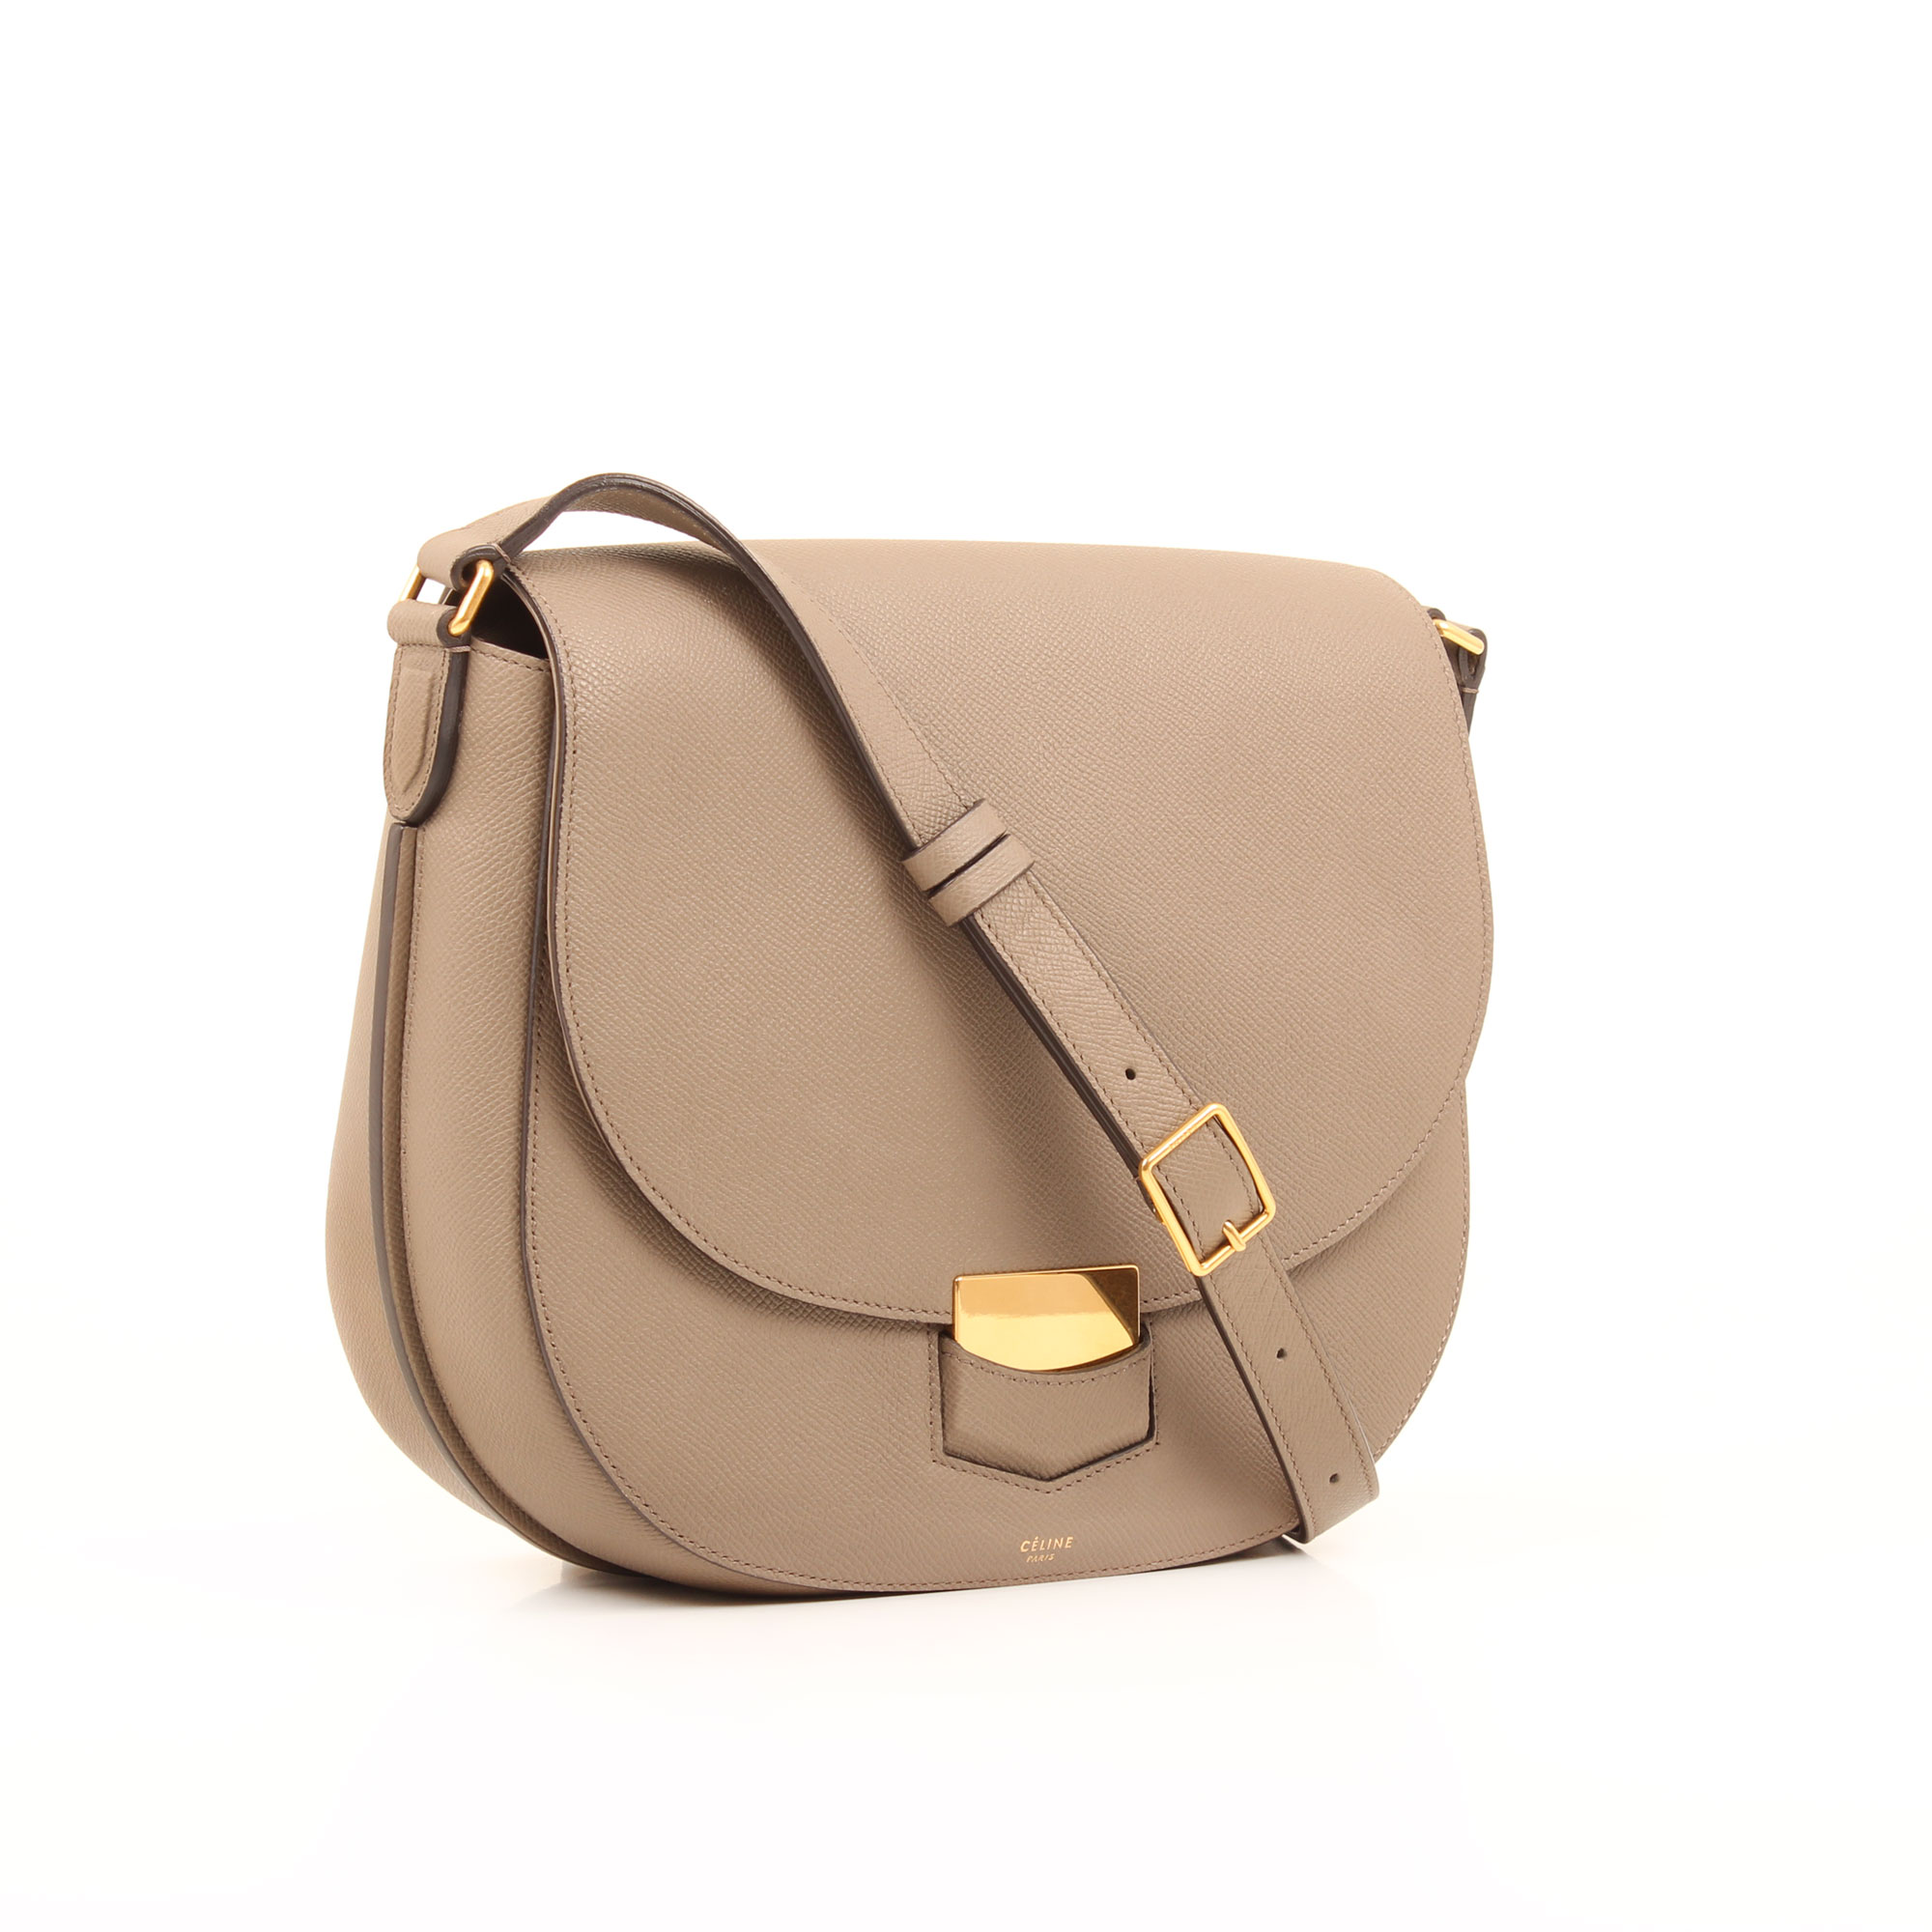 General 2 image of celine trotteur cross body grey grain leather bag